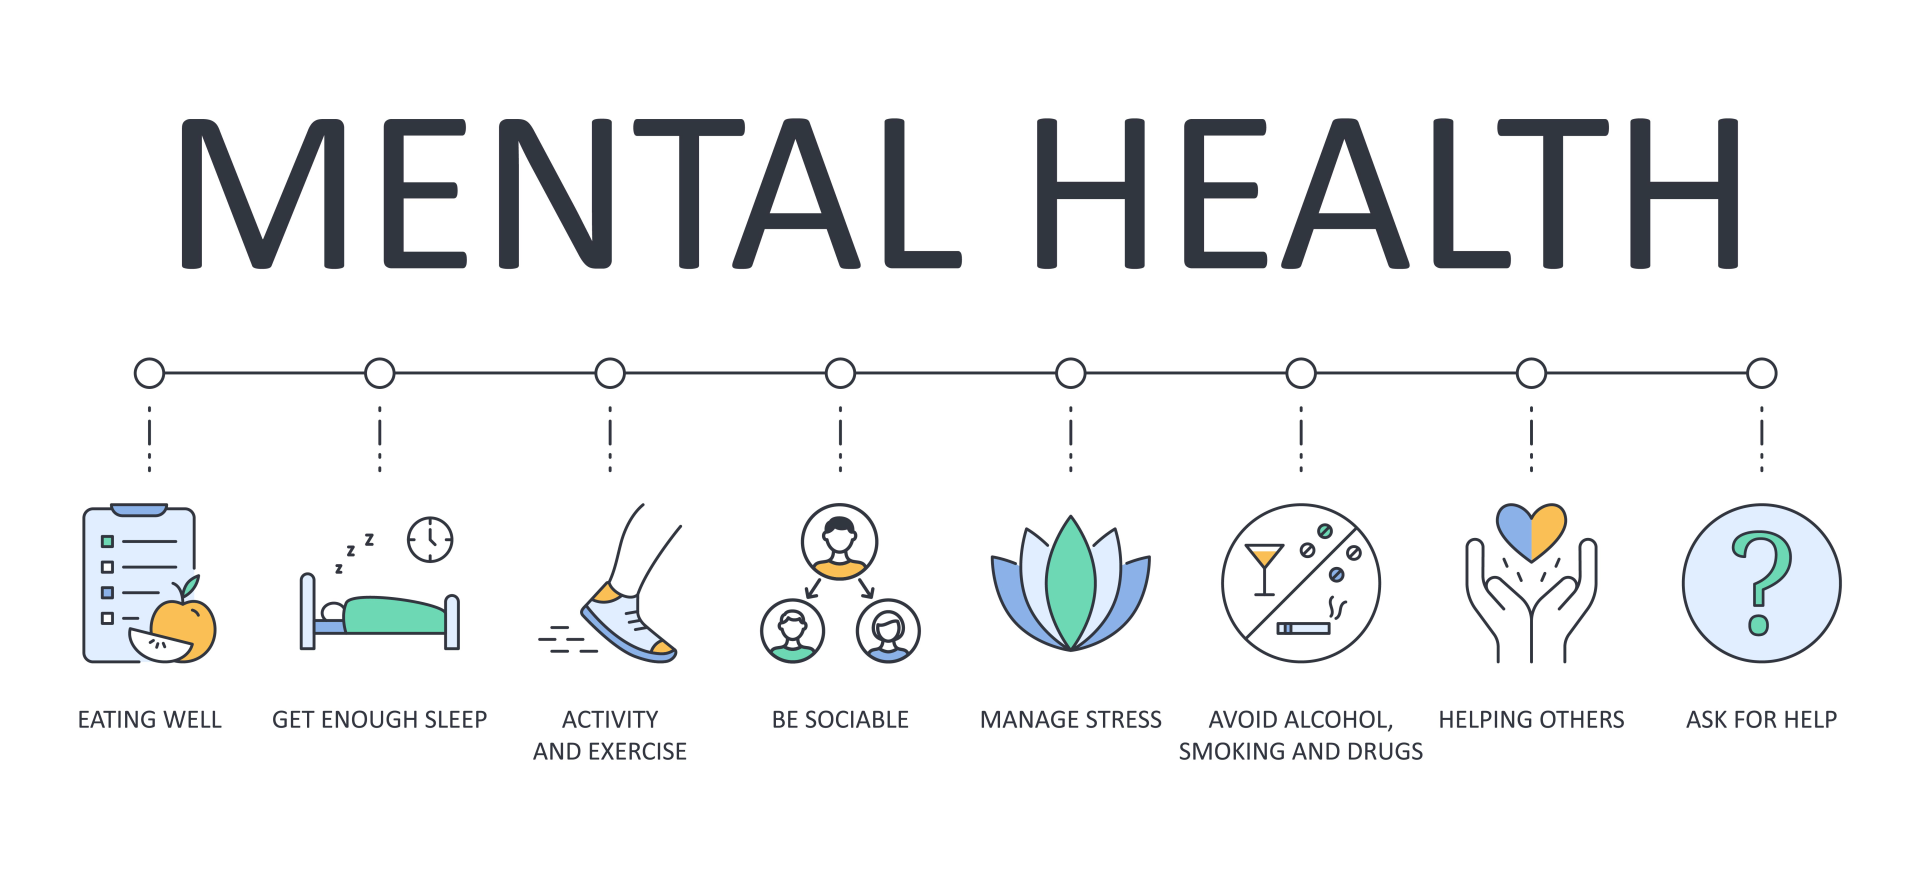 Does the way you think impact your physical health?